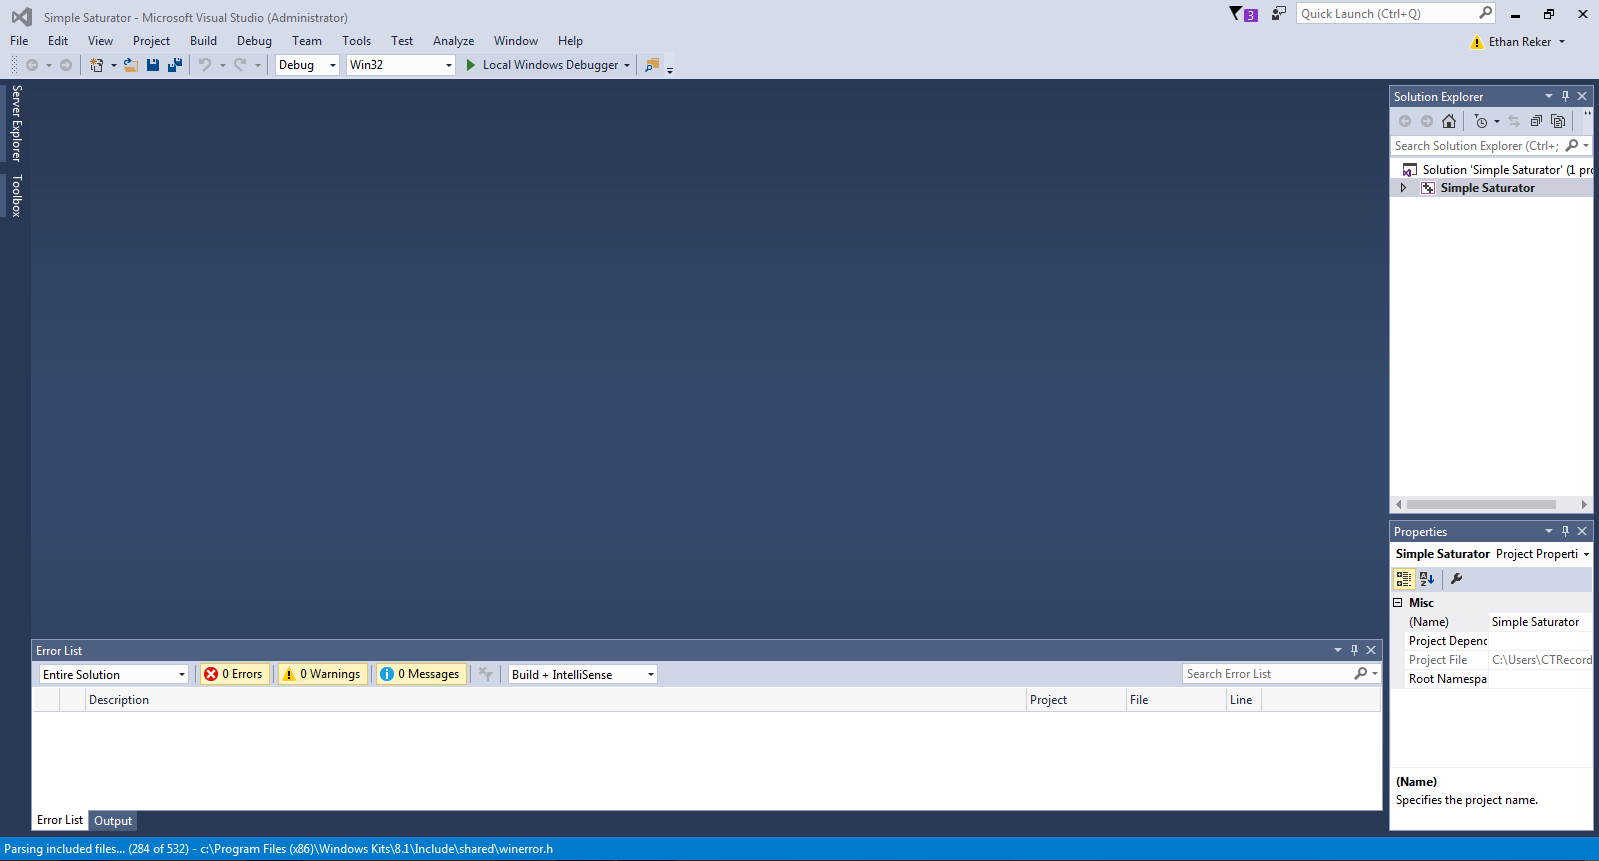 Visual Studio - New Project